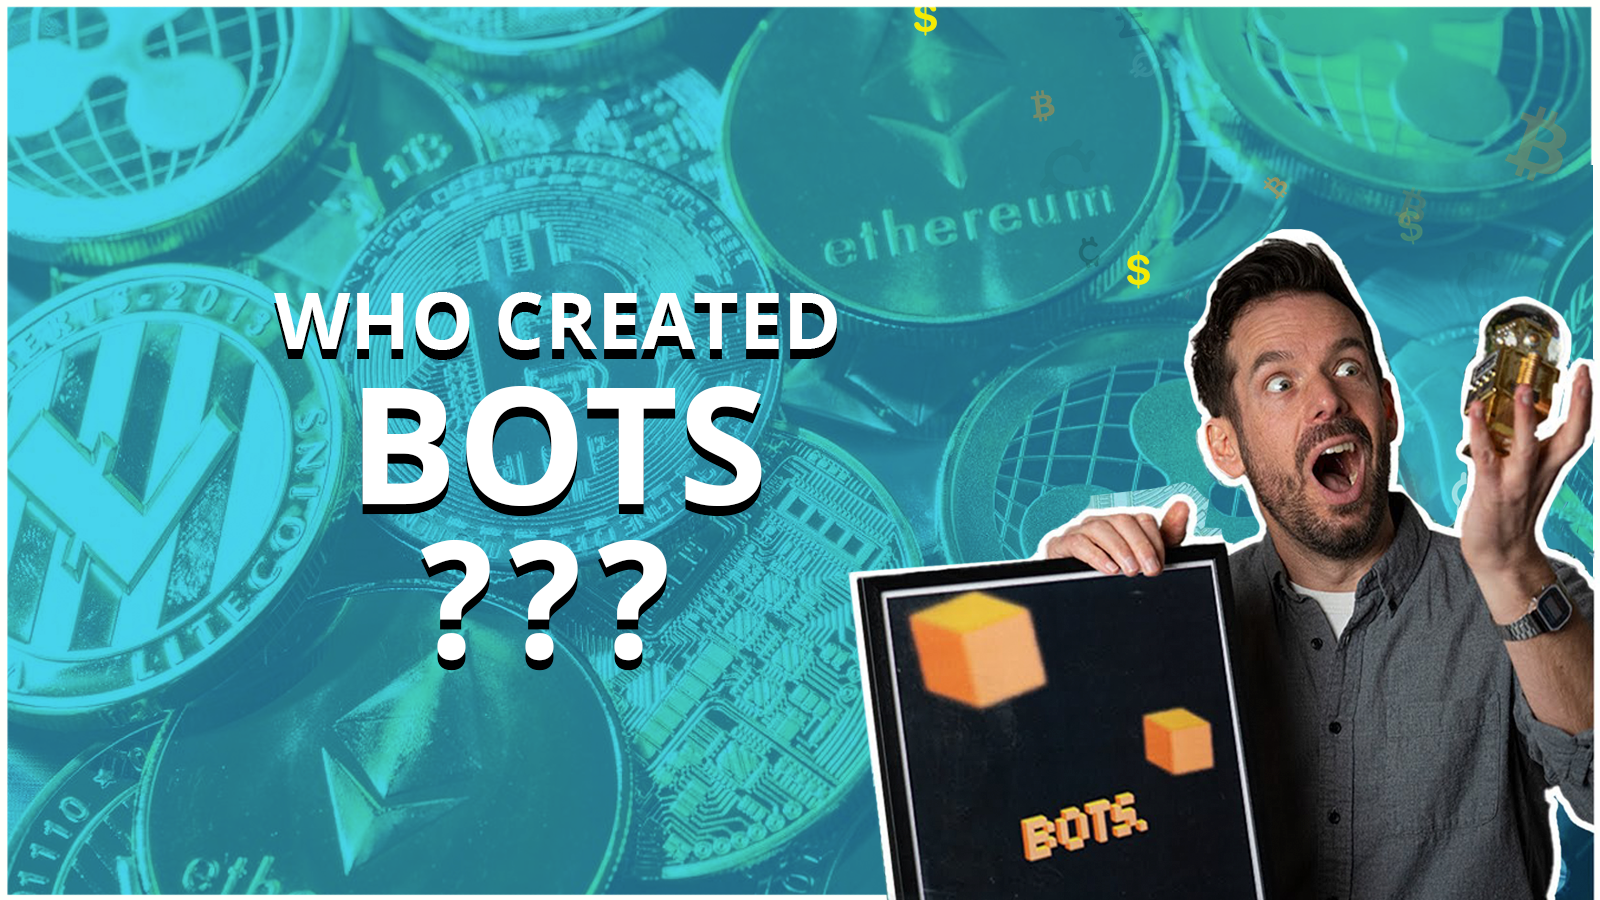 Who created BOTS andwhy?